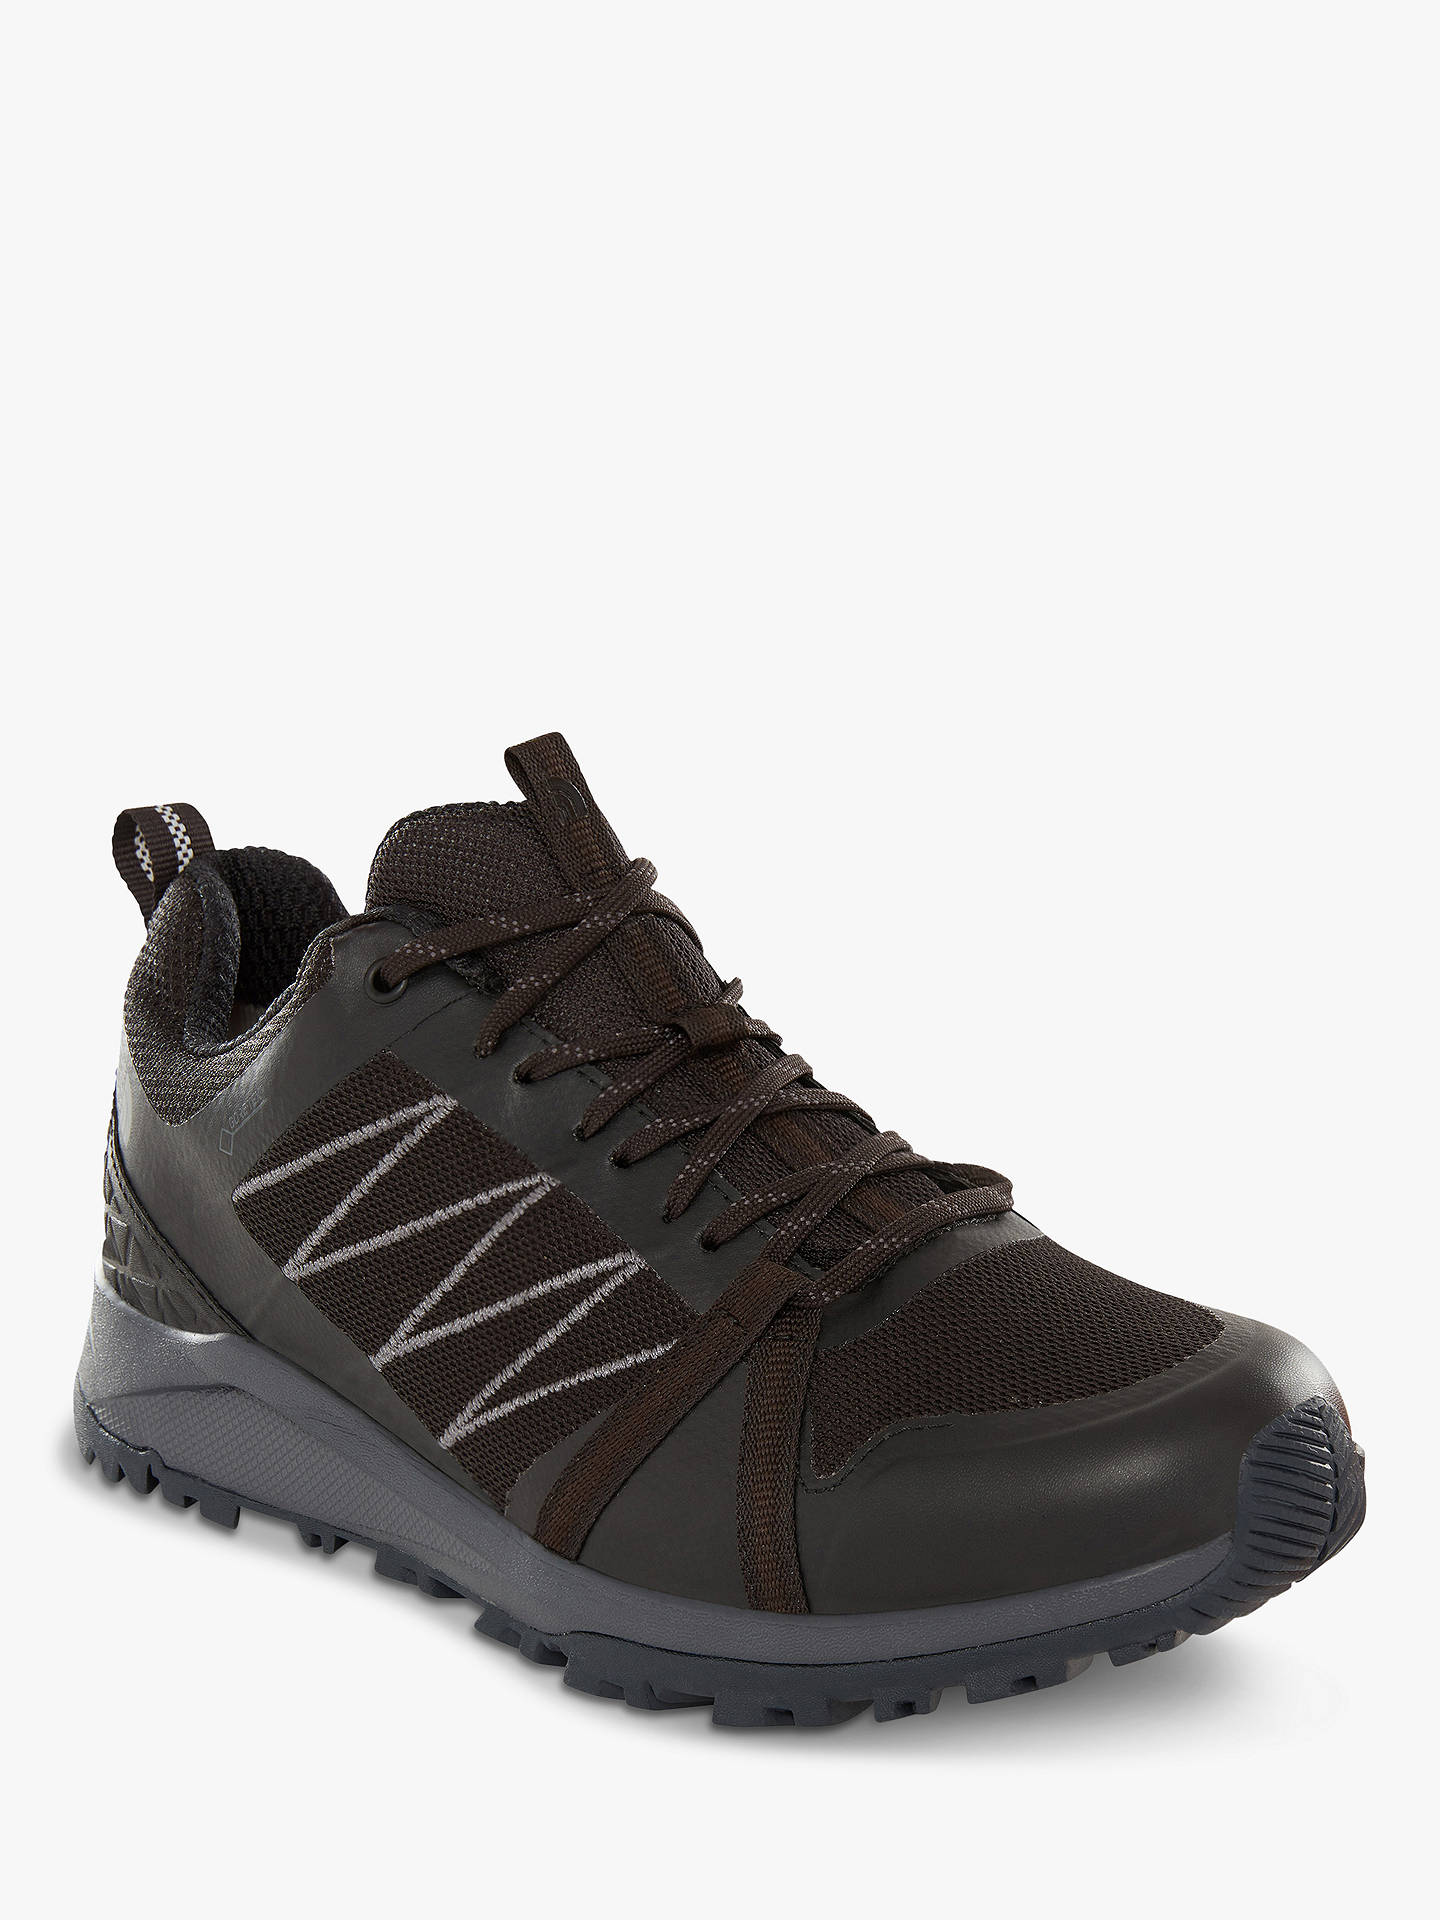 3803d54a5 The North Face Litewave Fastpack II GTX Women's Hiking Shoes, Black/Ebony  Grey